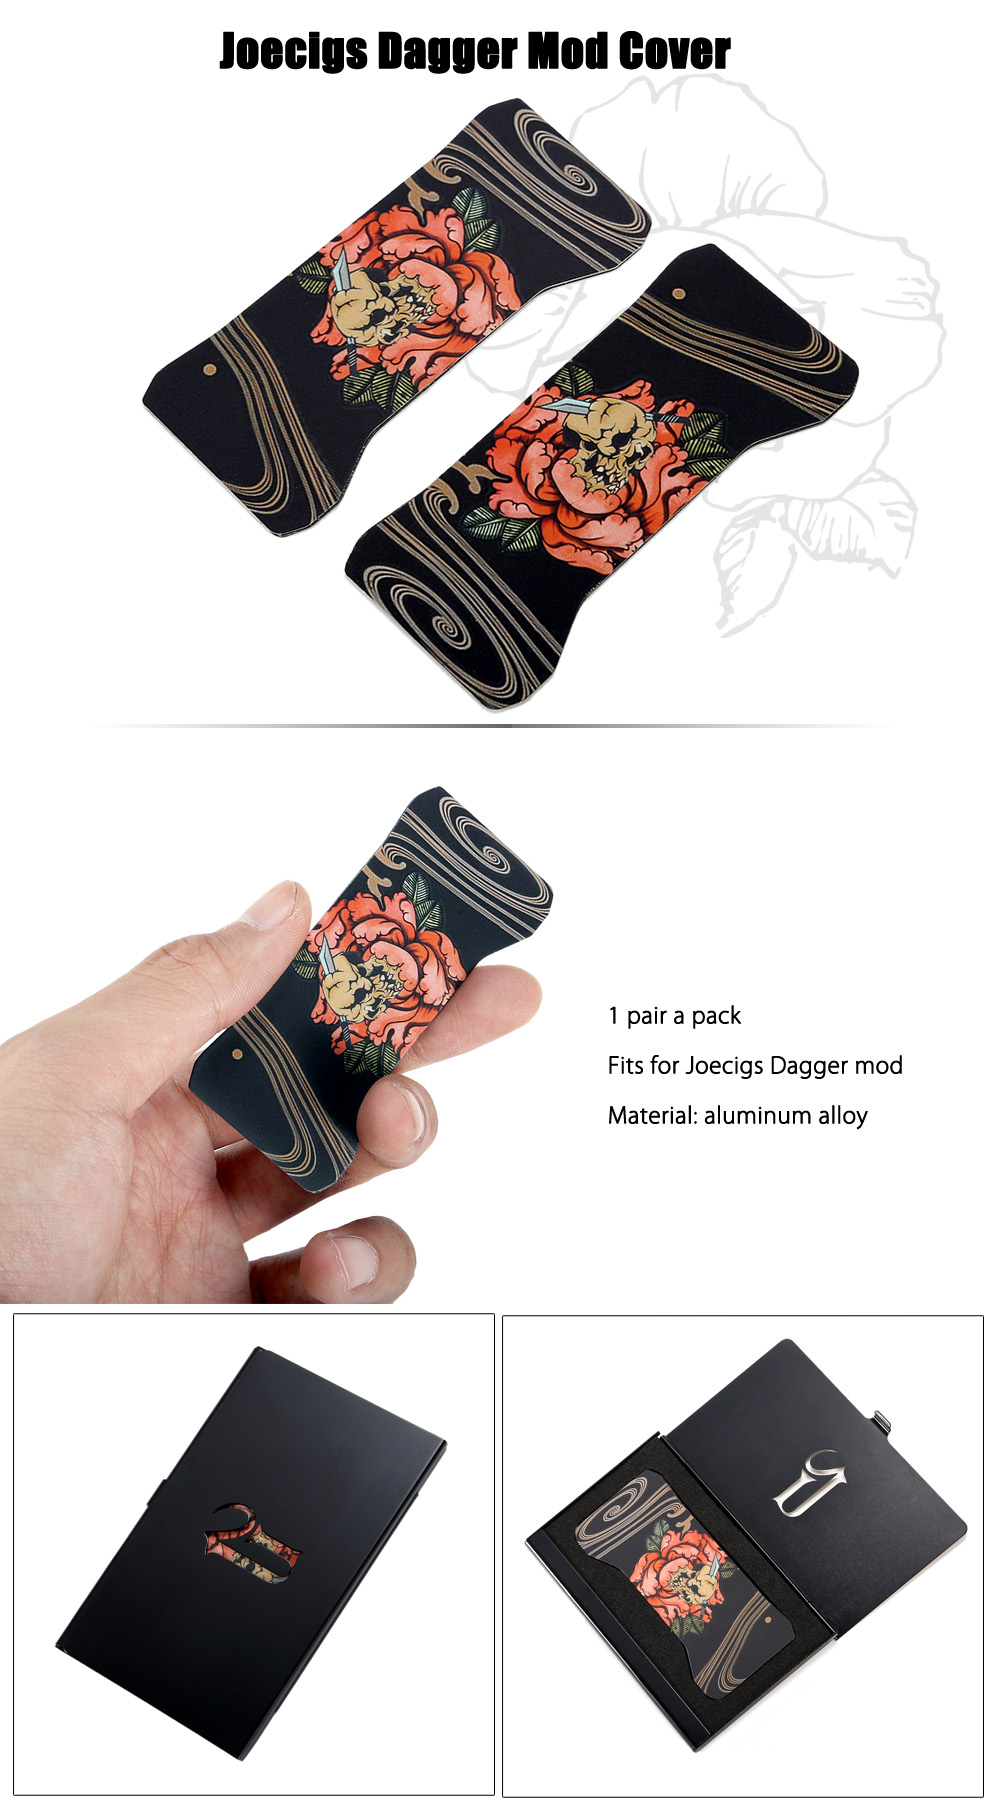 Original Joecigs Dagger Mod Cover with Aluminum Alloy Construction for E Cigarette